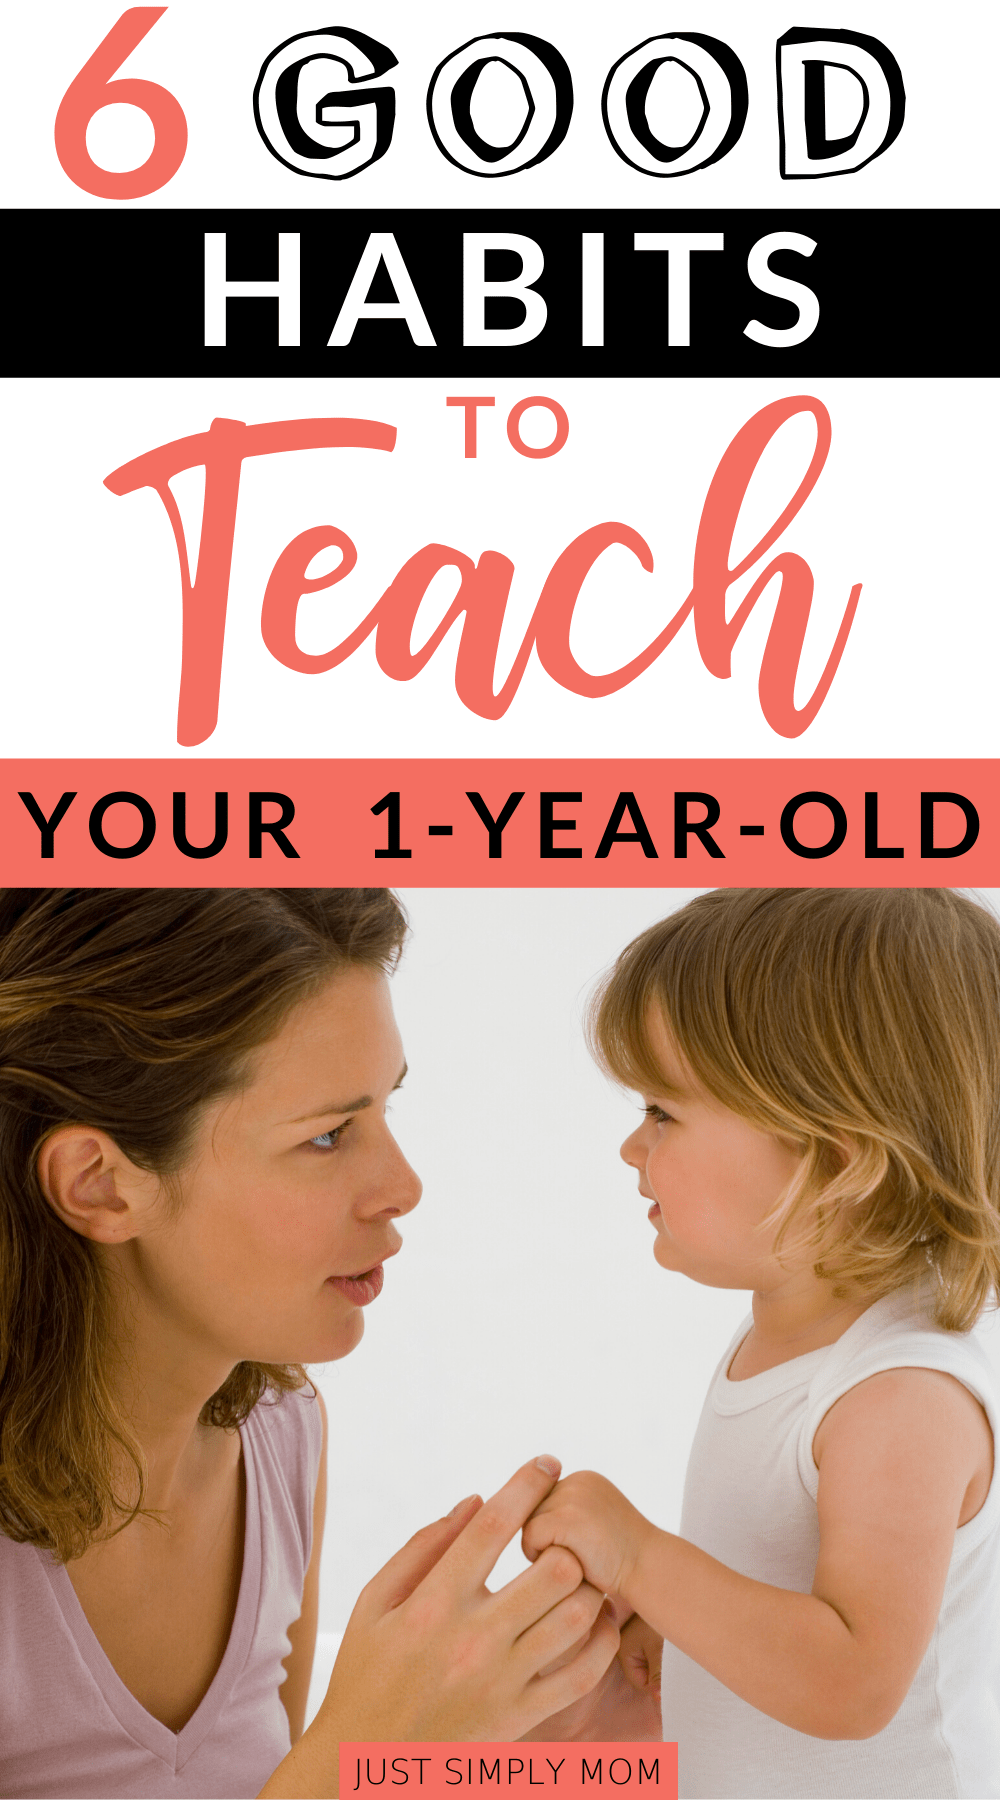 It's important to teach your child good habits, including manners, sharing, and caring for others. The earlier you start with your toddler or 1-year-old, the faster it will become natural to them. Instilling some of these positive actions will have a lasting impact on what kind of person they will become.